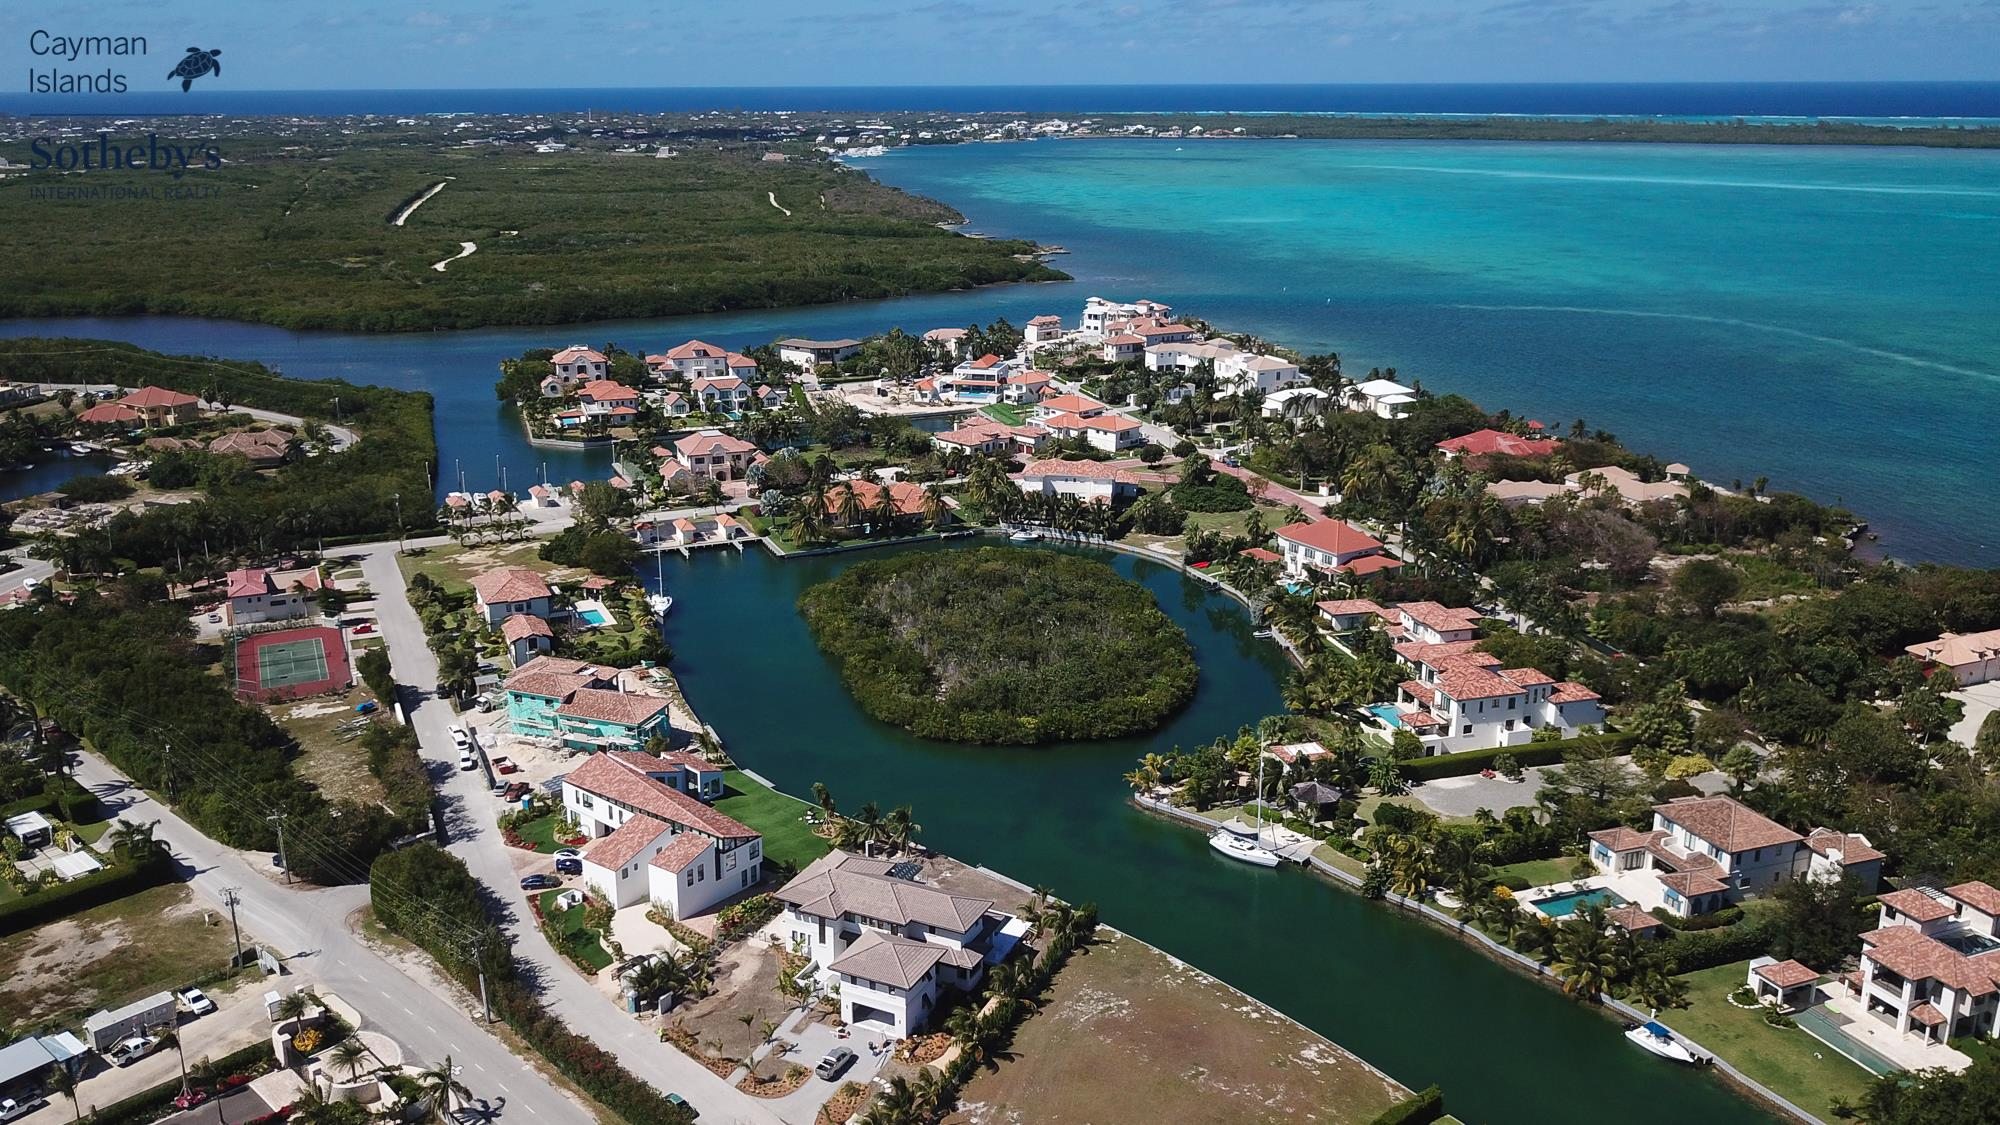 Aerial view of Vista Del Mar, Grand Cayman